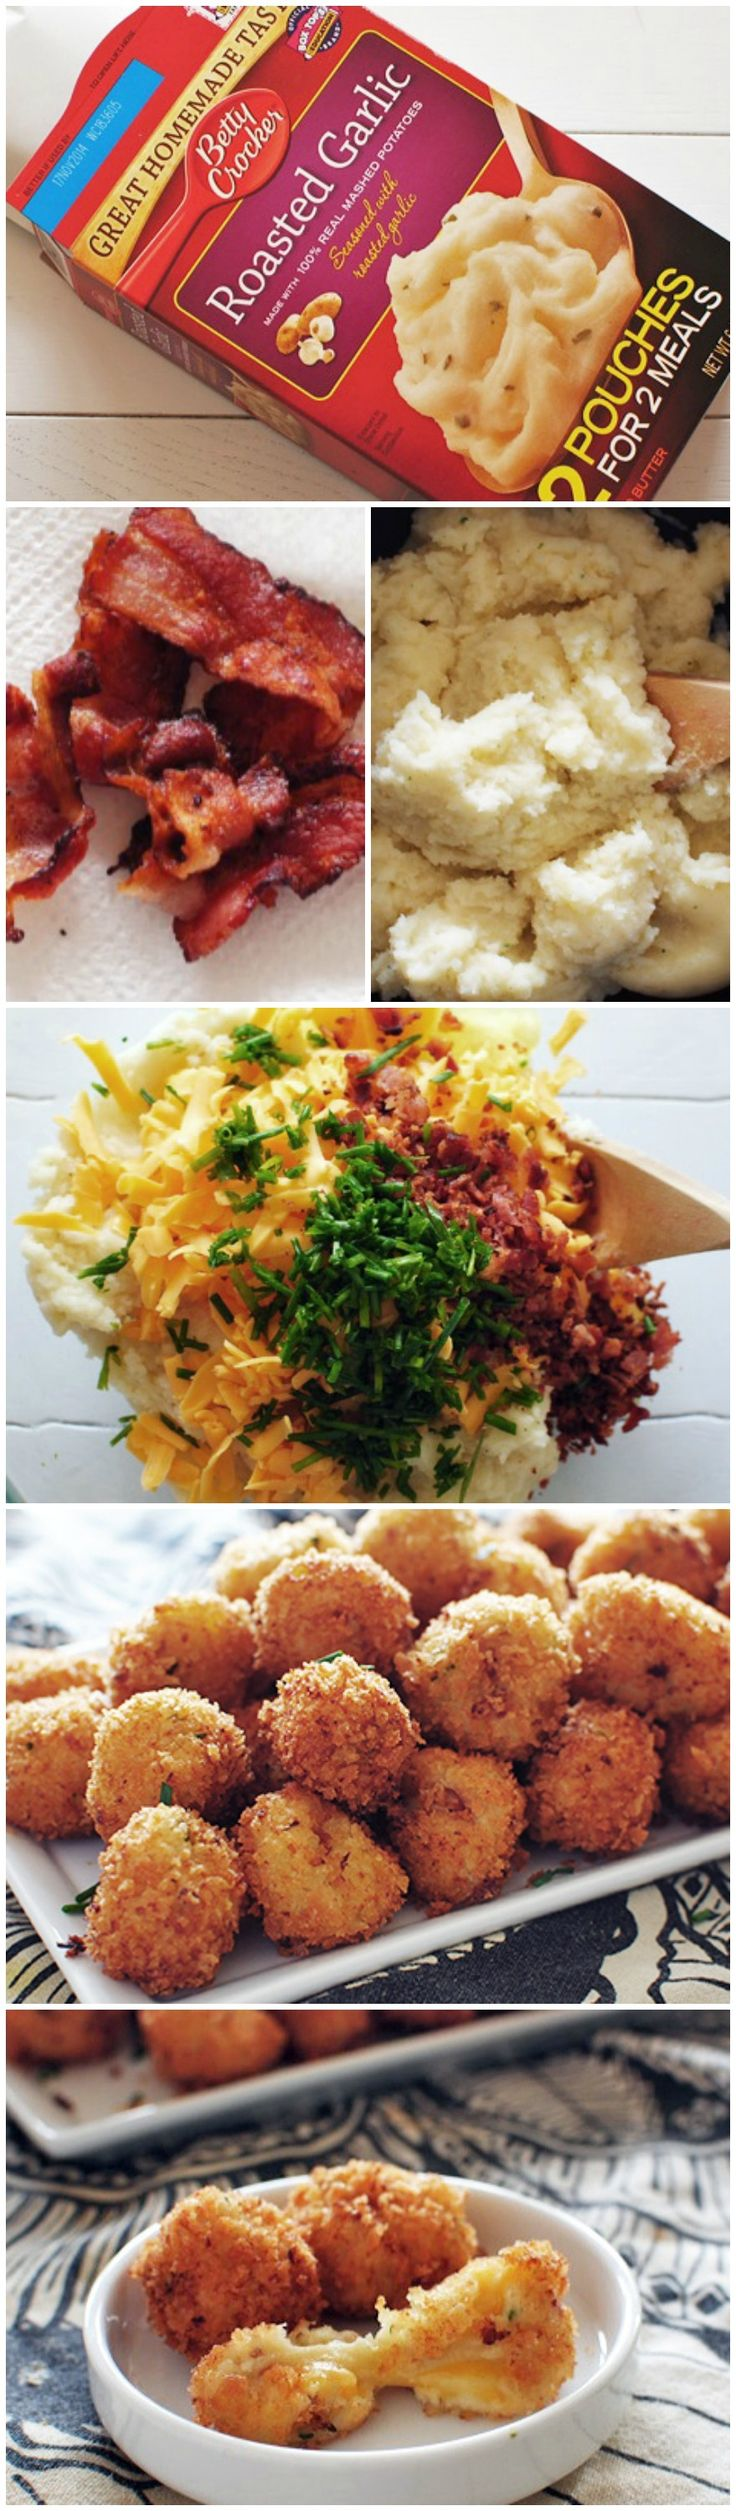 I must try this!! Loaded Cheesy Mashed Potato Balls